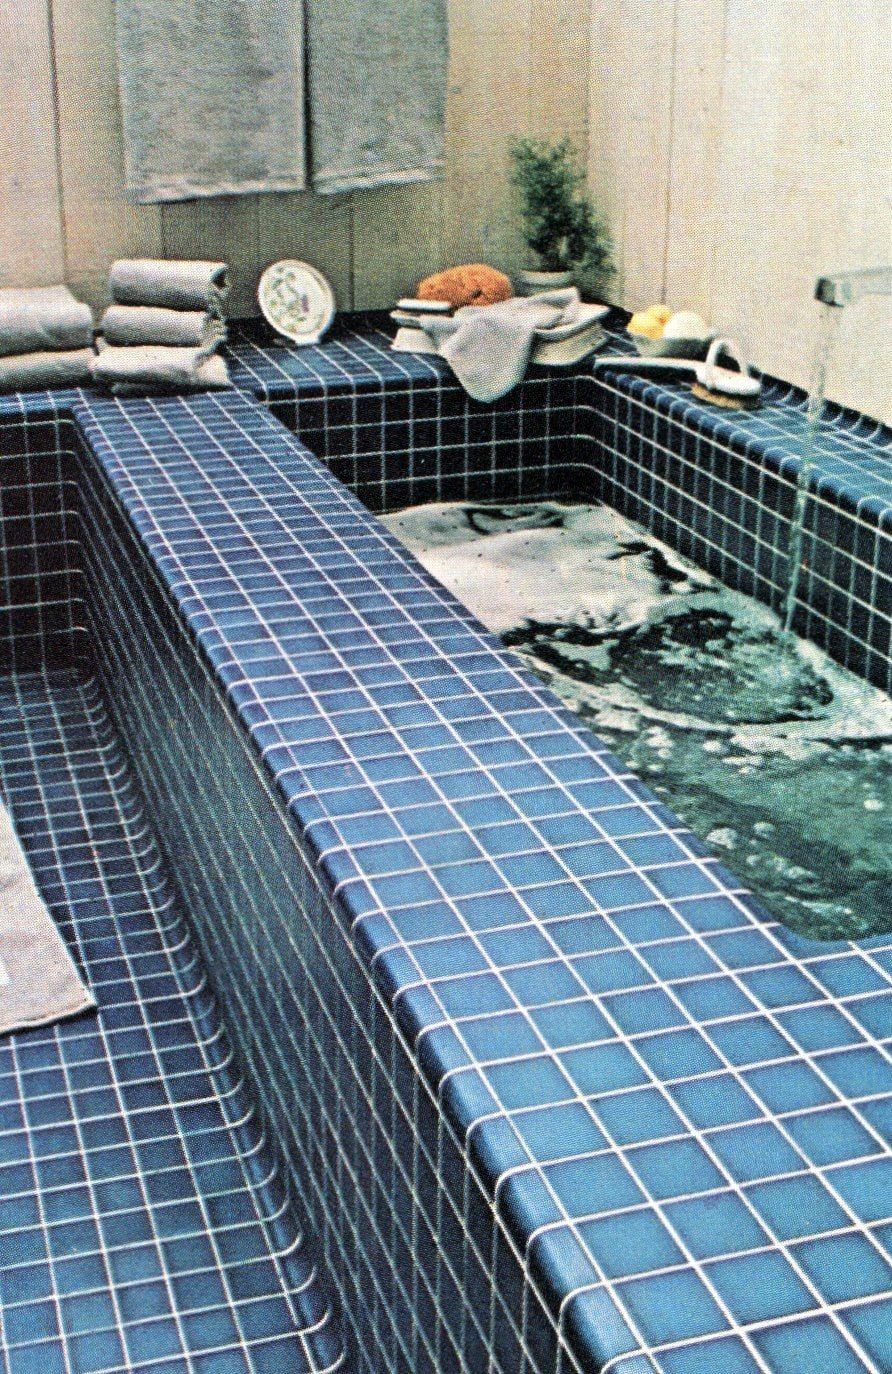 Blue ceramic tile surround on a bathtub (1981)